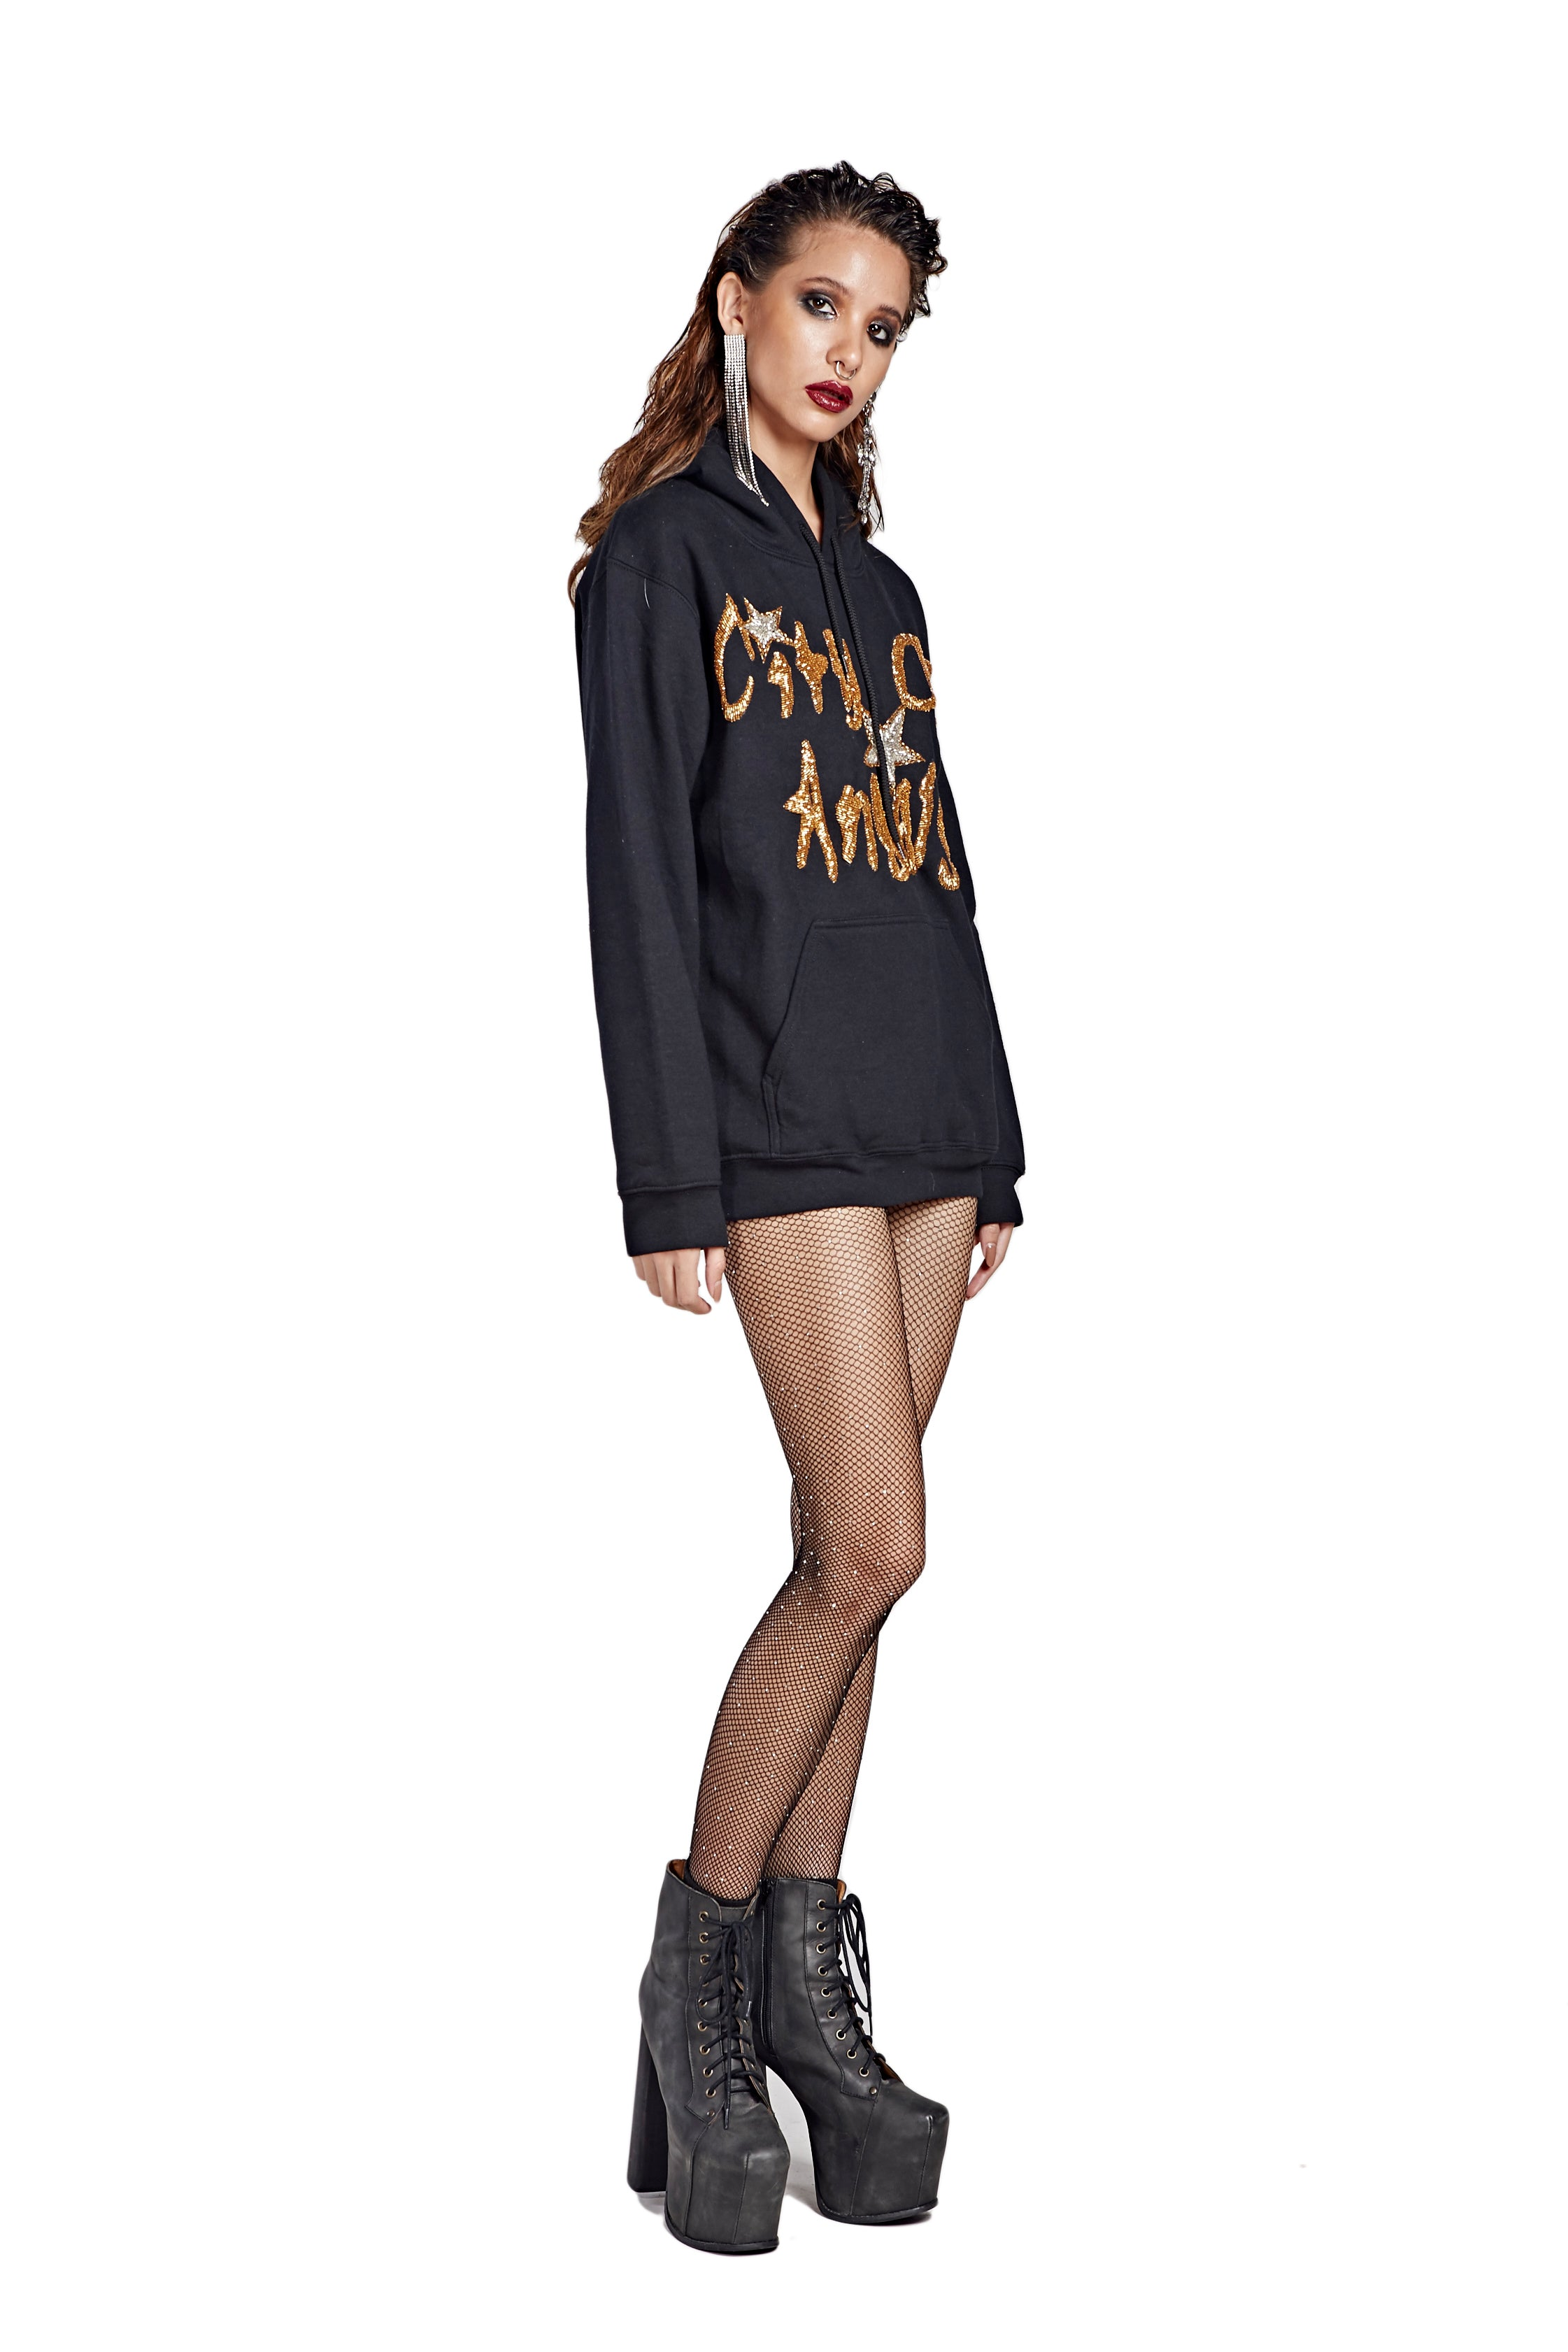 City of Angels Hoodie - Black with Gold Text